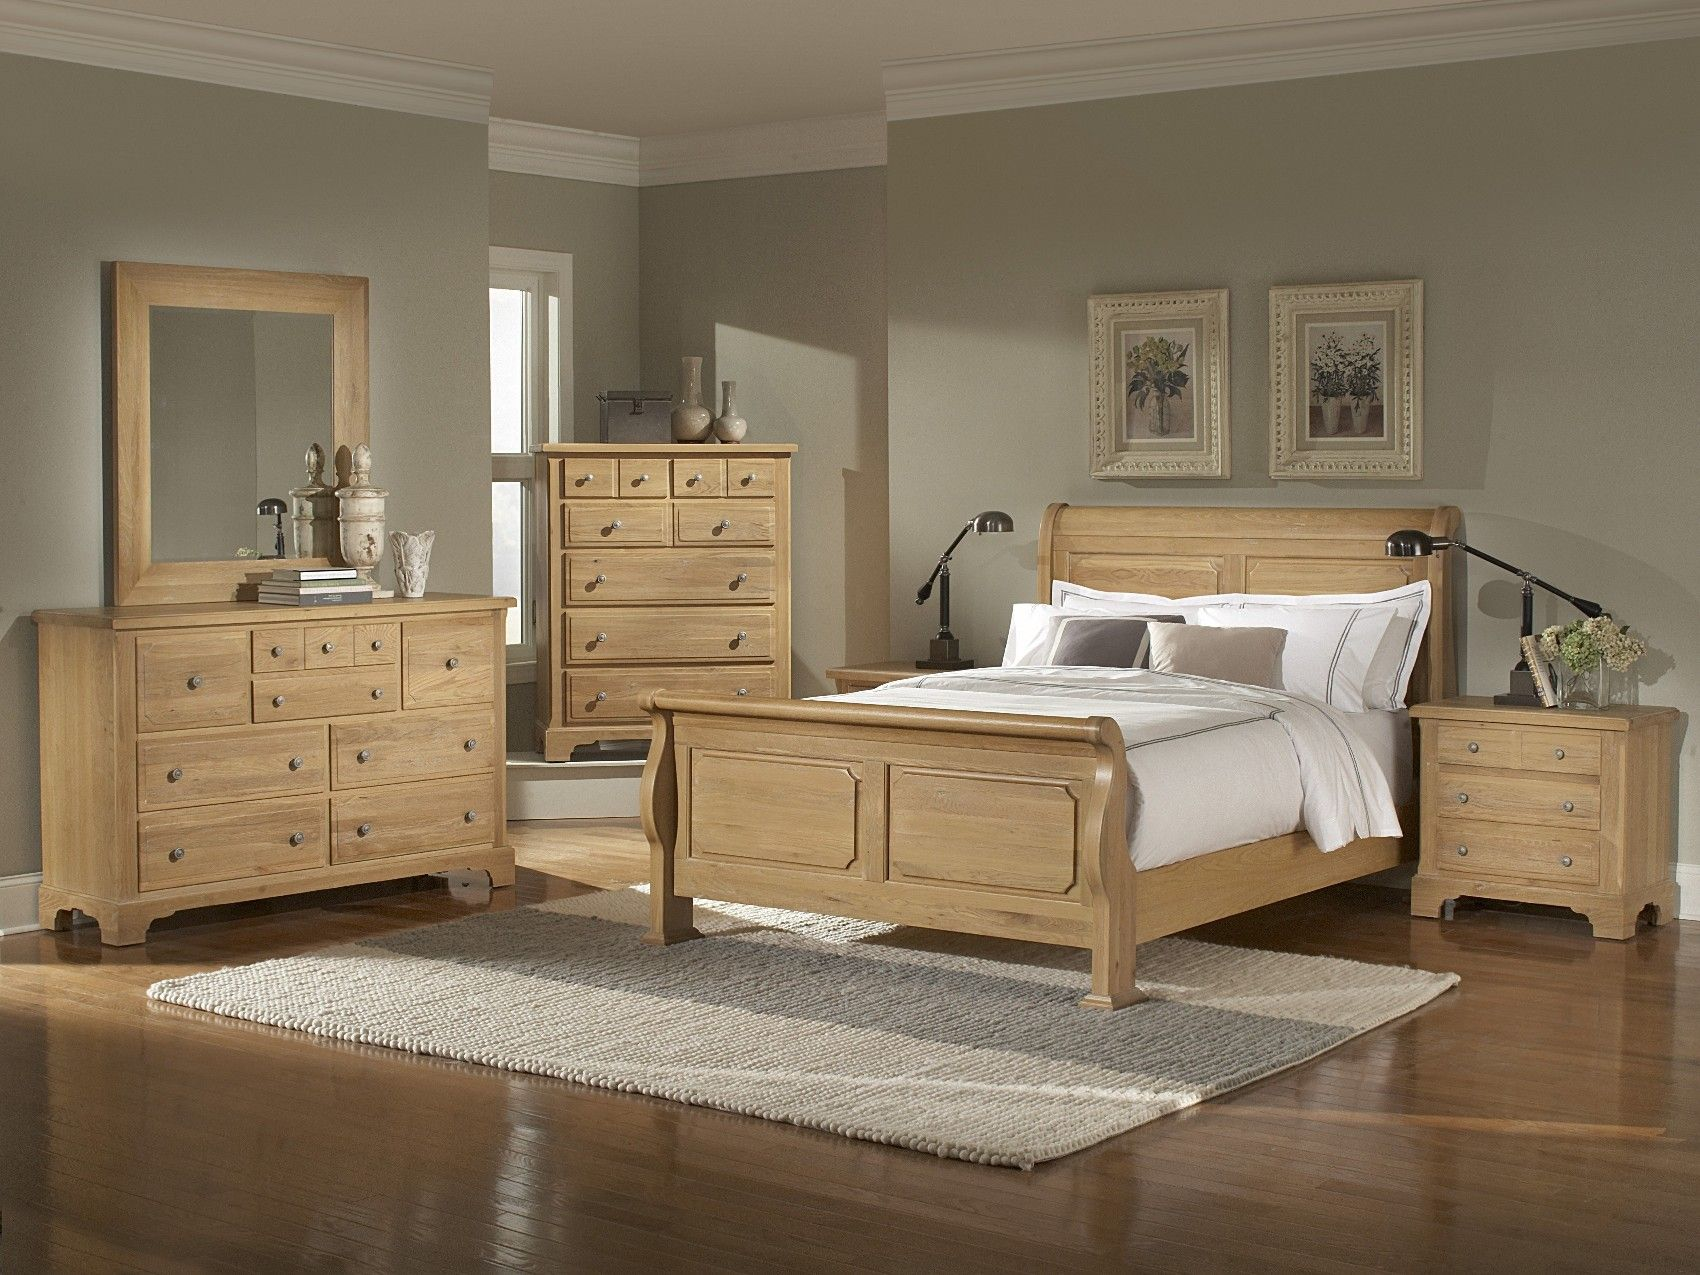 oak bedroom furniture sets | ... Washed Oak Queen Sleigh Bedroom ...